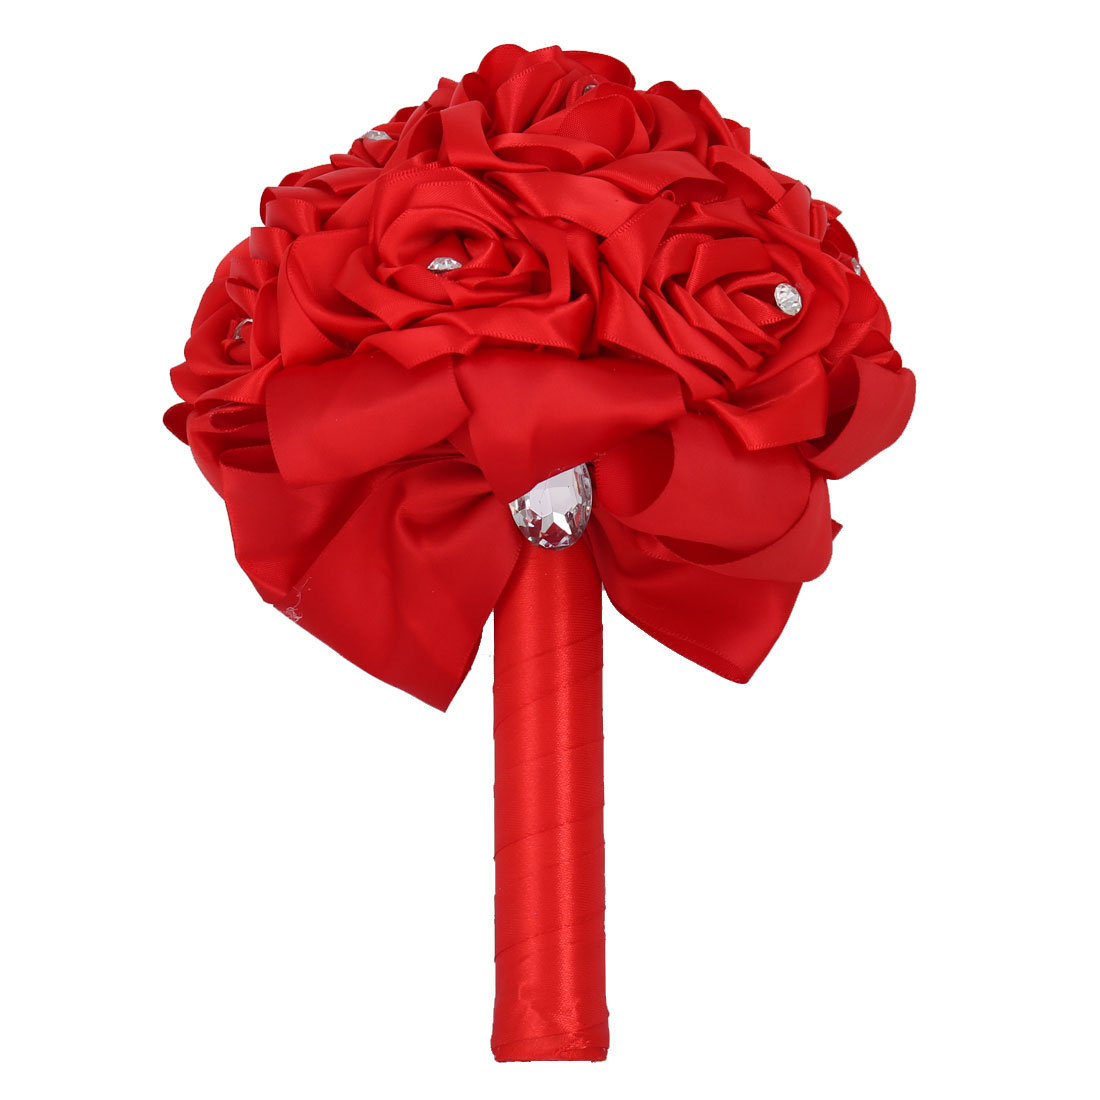 Wedding Party Foam Buds Handhold Roses Bouquet Craft Artificial Flower Decor Red